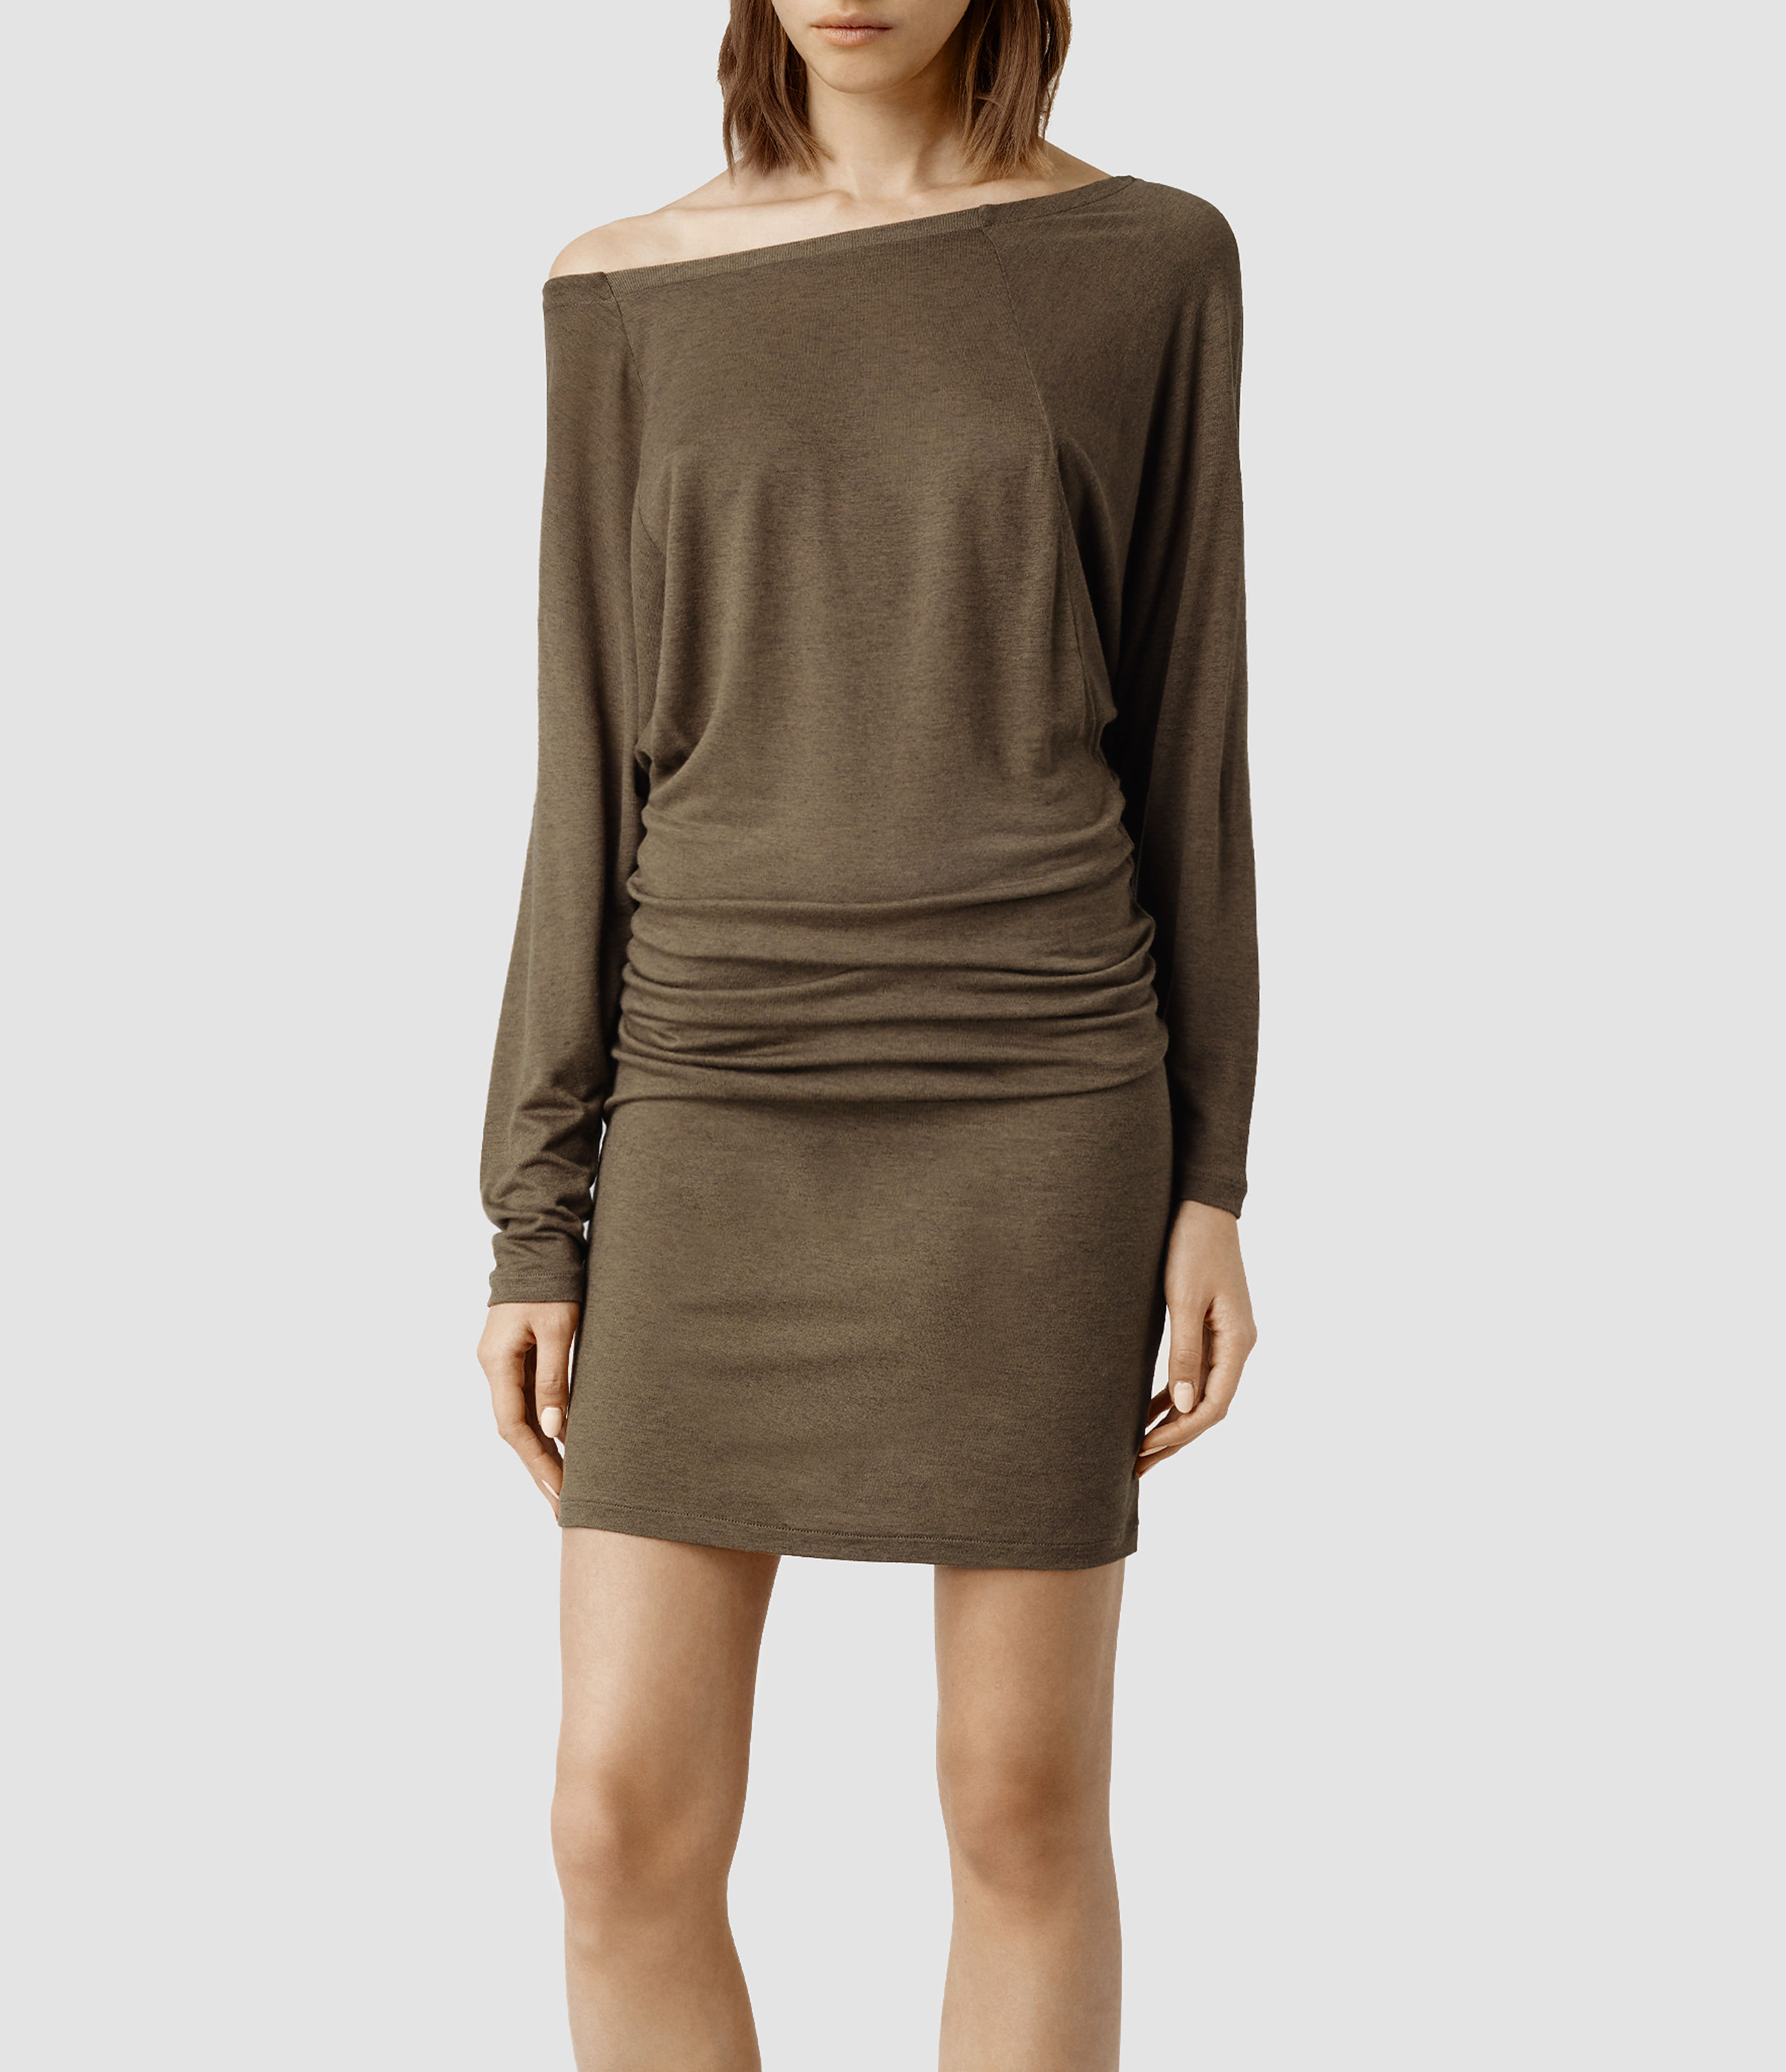 553f44c3b2 AllSaints Timi Dress in Brown - Lyst